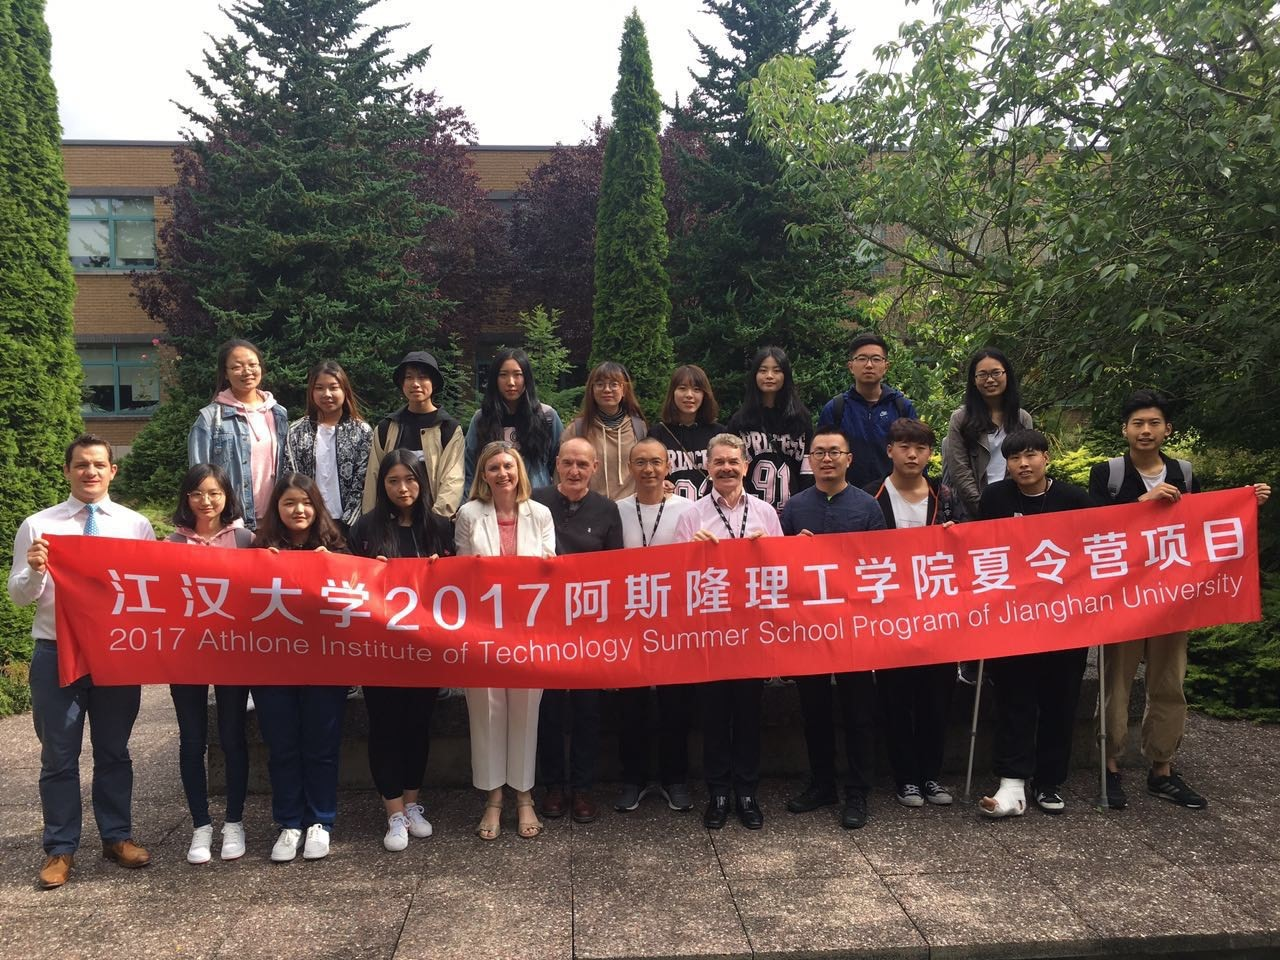 2017 AIT Summer School Program of Jianghan University